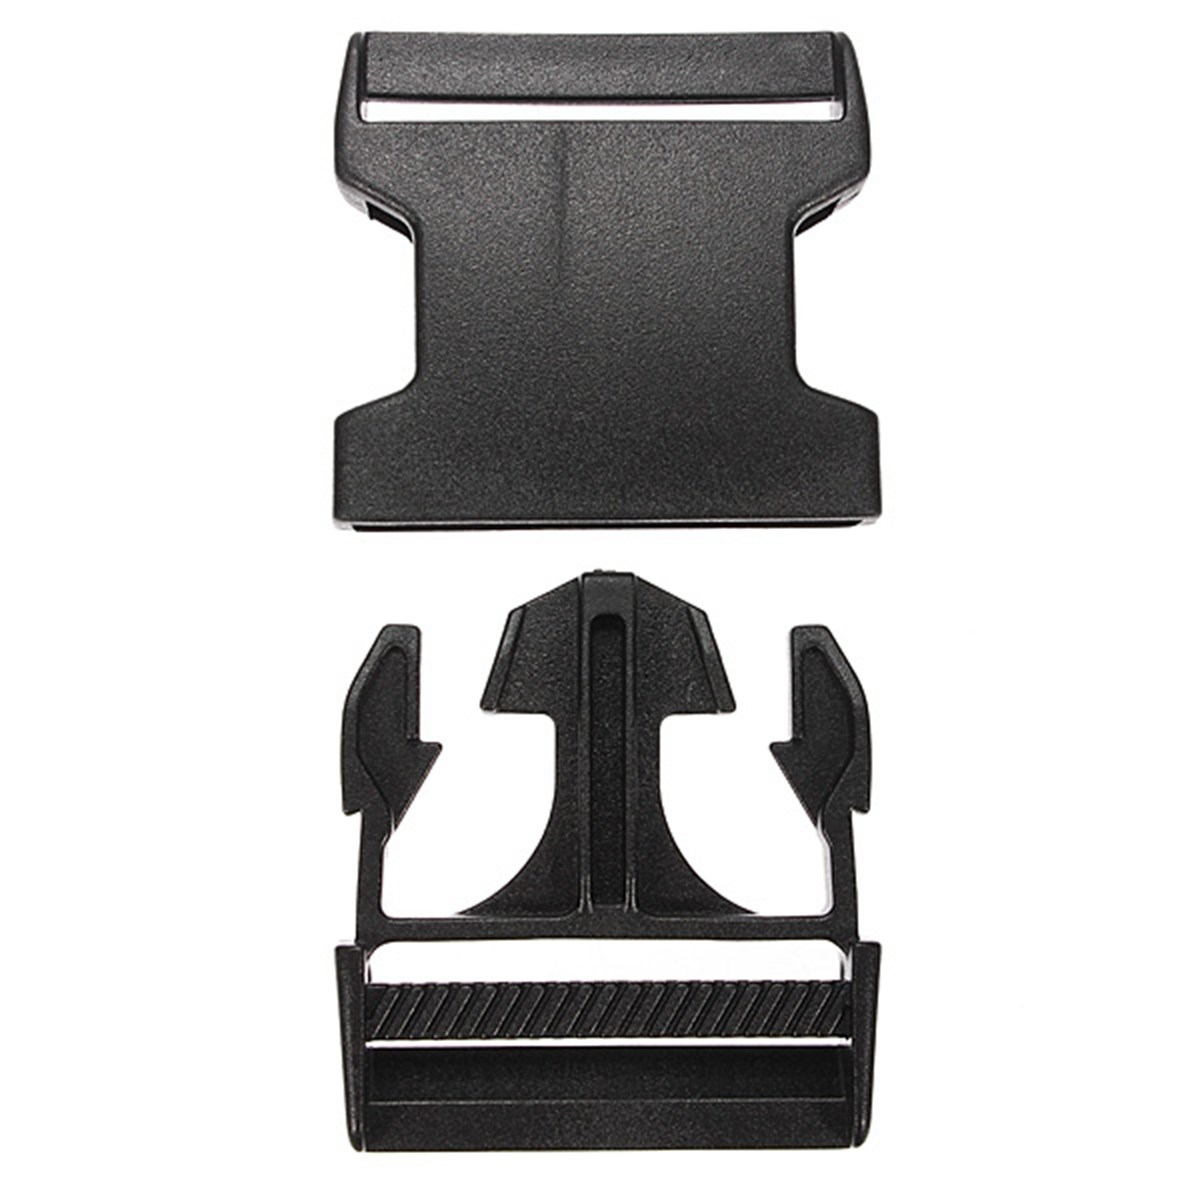 1PCS 25/40/50mm Black Plastic Side Quick Release Clasp Buckles Webbing Strap Useful Bag Accessories Parts For Wholesale